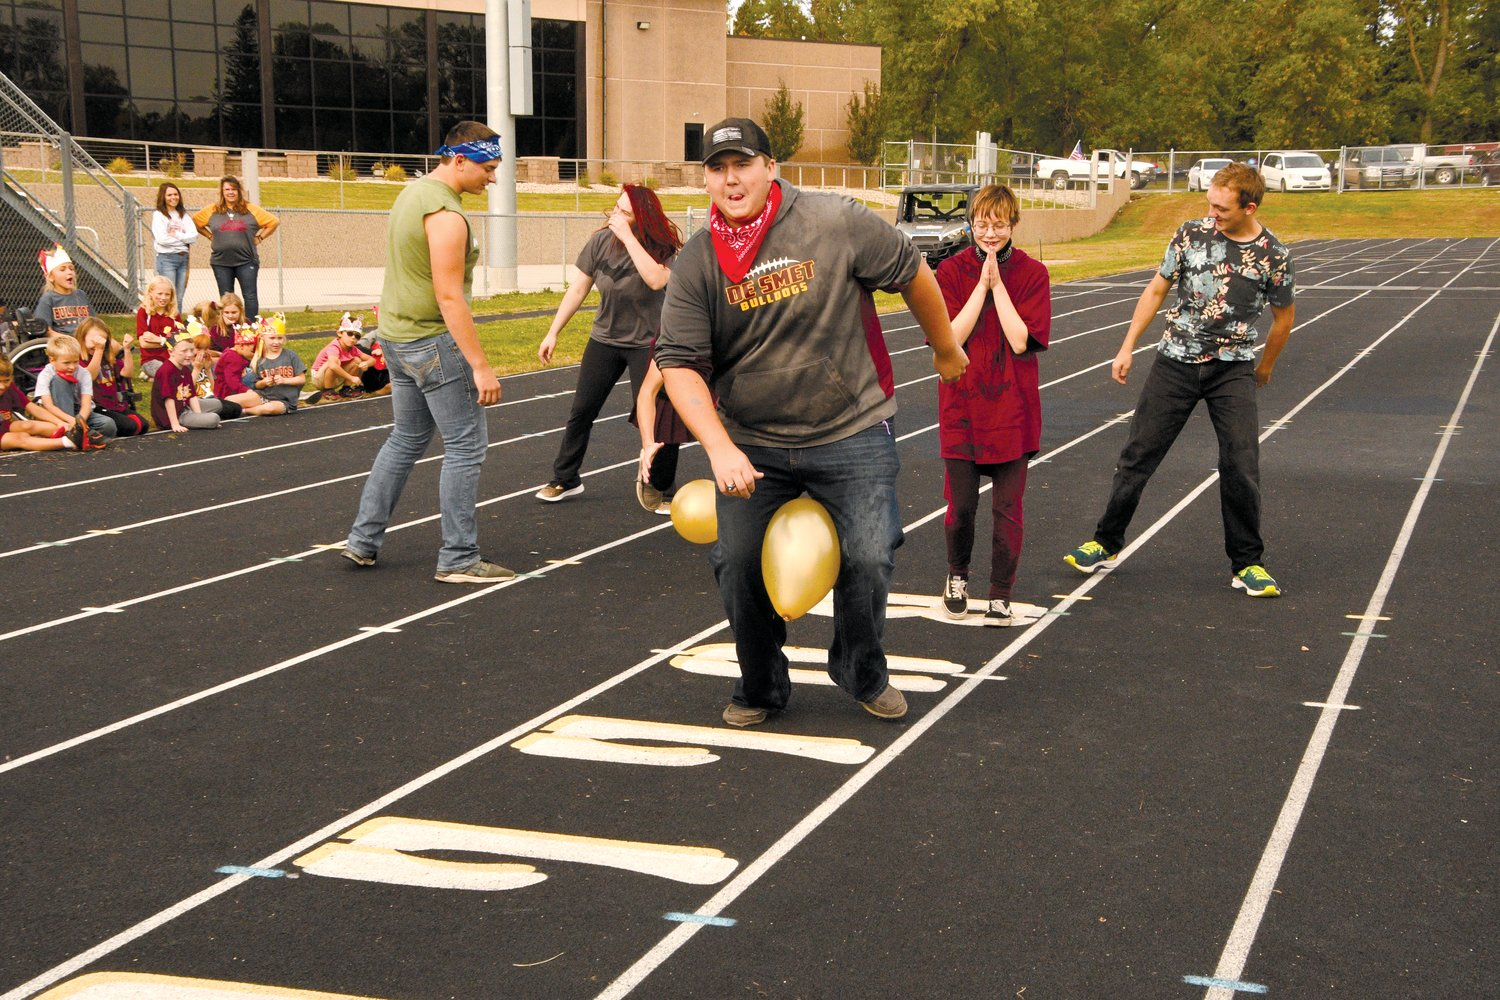 De Smet seniors, Kain Gilligan, left, Caitlyn Brag, Trevor Benthin, Carly Wiese and Andy Close participated in  a relay during Friday's pep-fest. The elementary students enjoyed cheering them on.